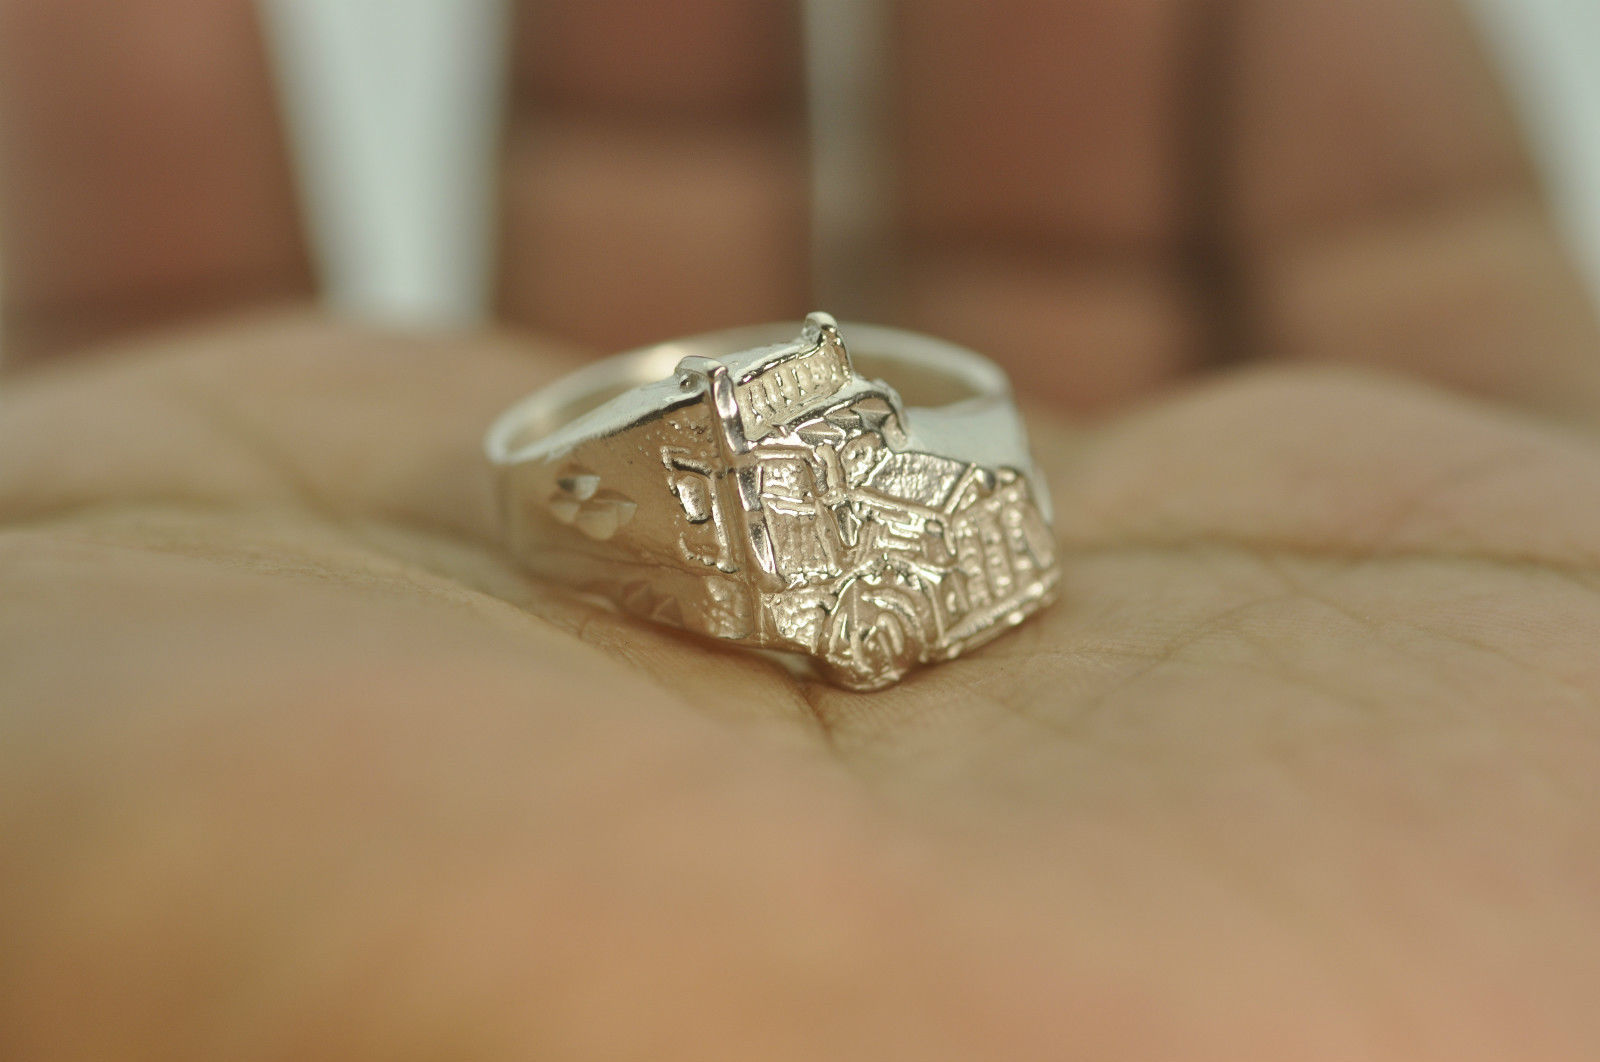 Pick Size New 925 Sterling Silver 18 Wheeler Truck Driver Ring Jewelry Vehicle